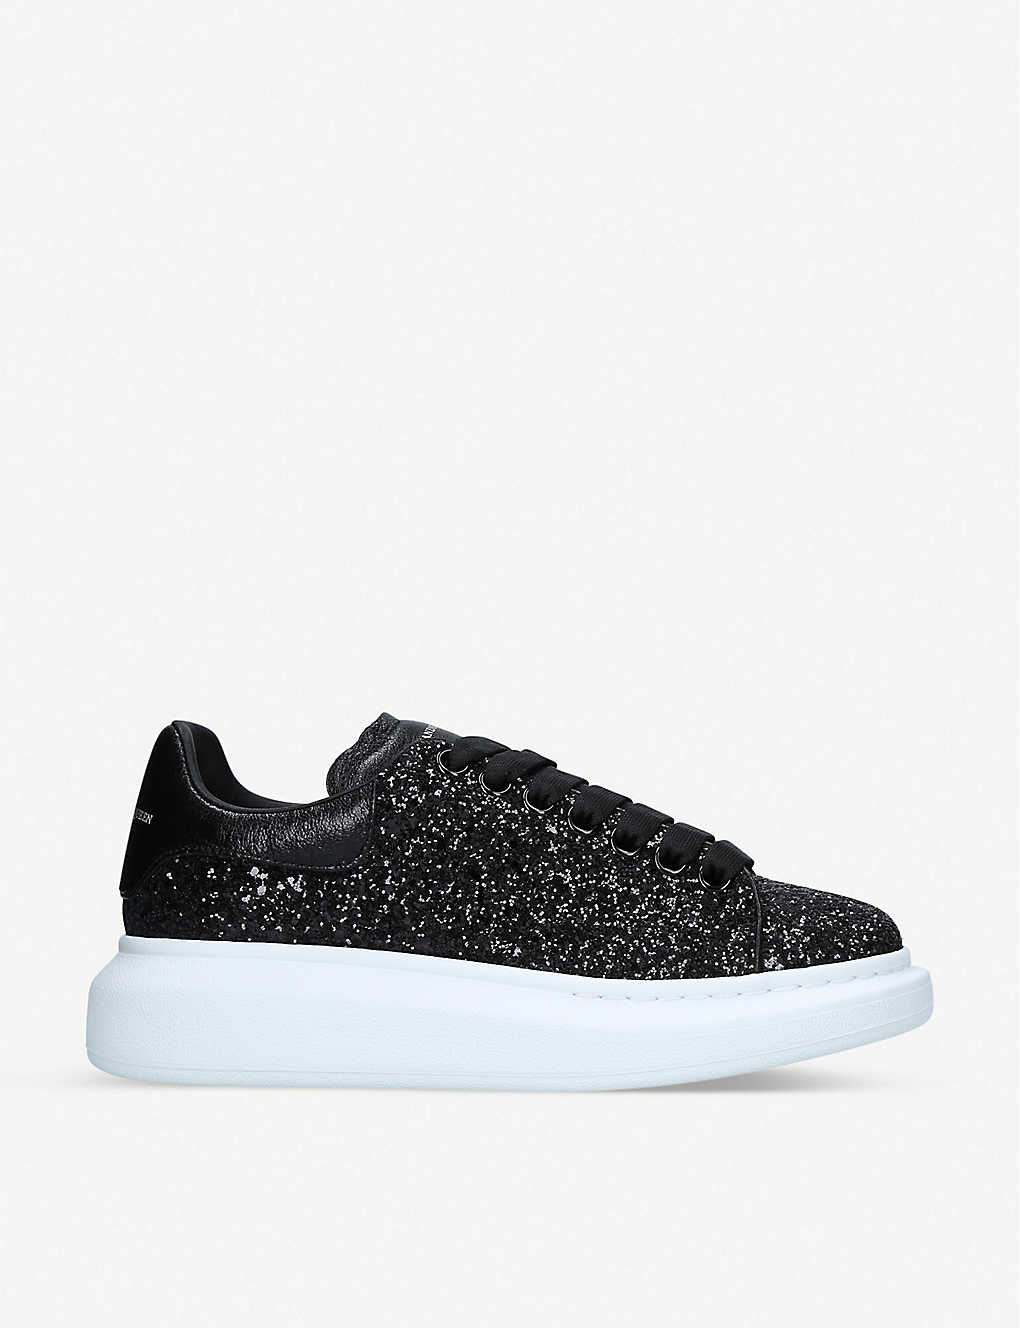 1484cea23195 ALEXANDER MCQUEEN - Lace-up glitter trainers